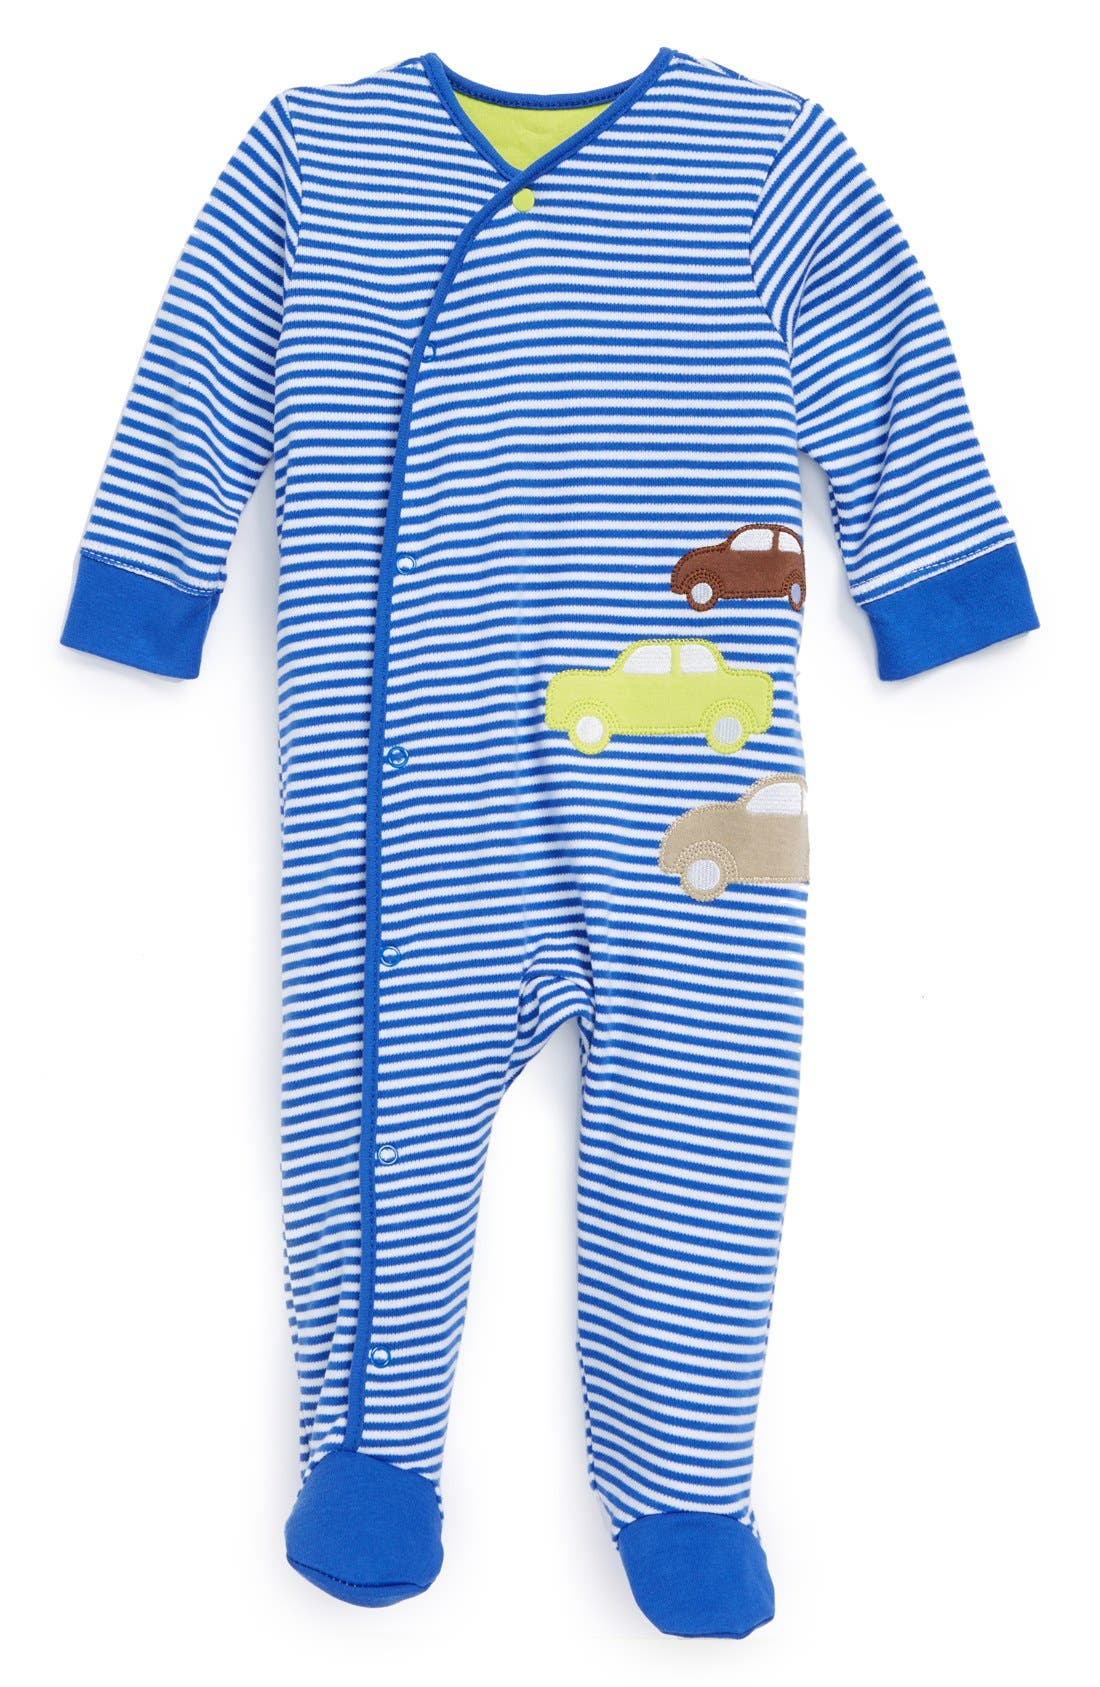 Main Image - Offspring 'Car Park' One-Piece (Baby Boys)